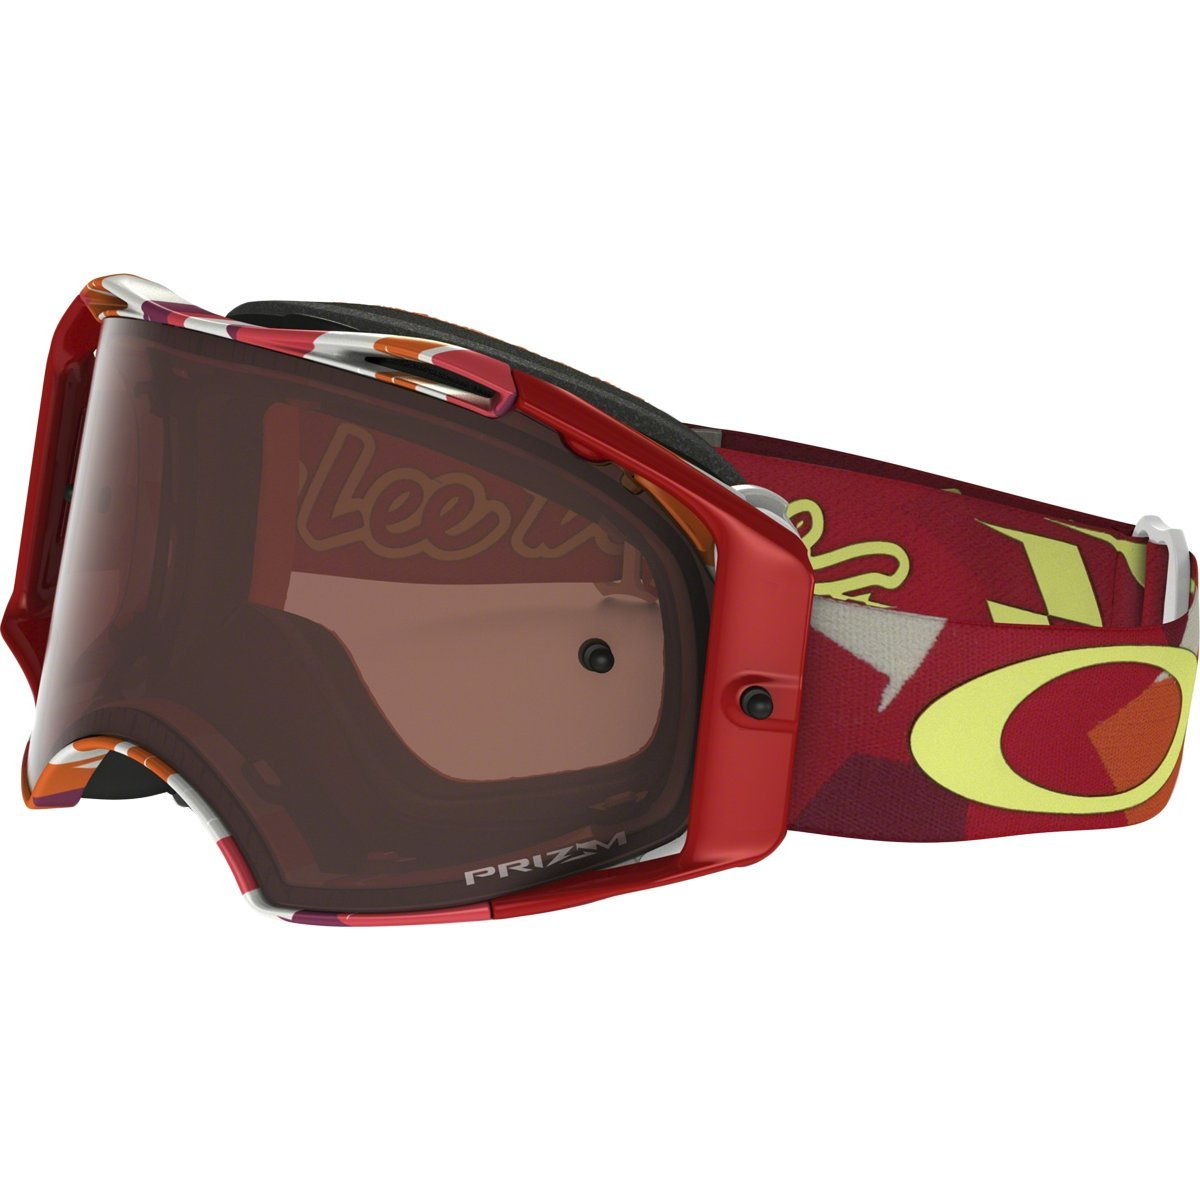 Oakley Airbrake MX TLD Adult Off-Road Motorcycle Goggles Eyewear - Splinter Orange Red/Prizm MX Bronze/One Size Fits All